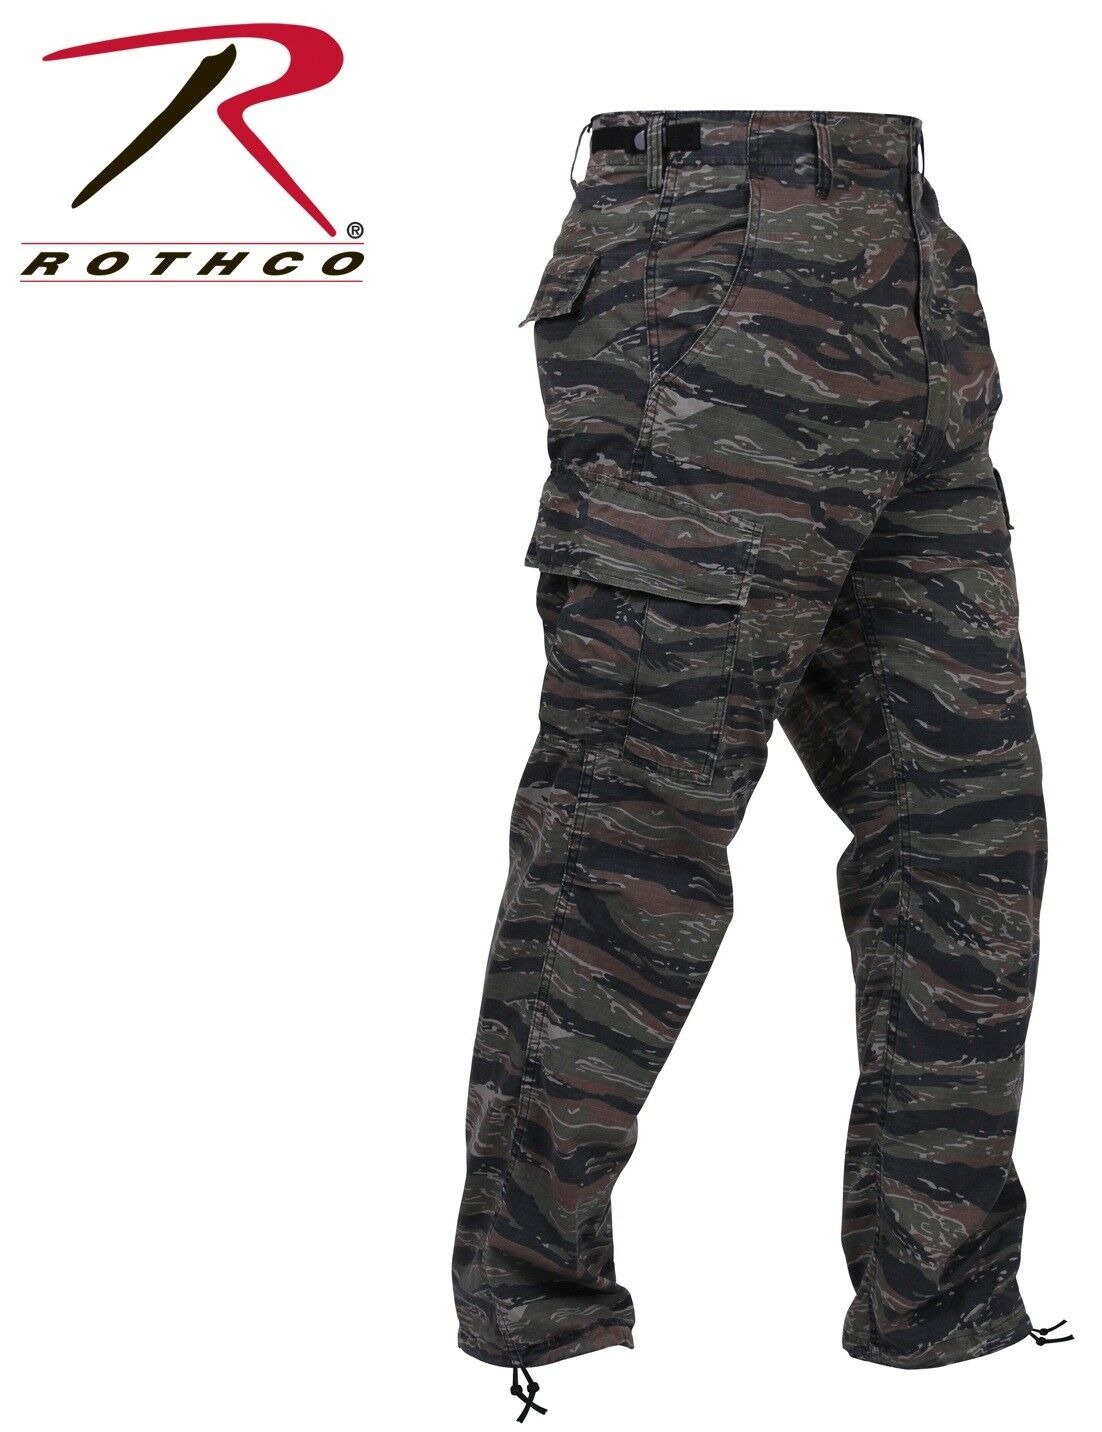 BDU pants military style tiger stripe camo cargo trousers Poly Cott redhco 7995